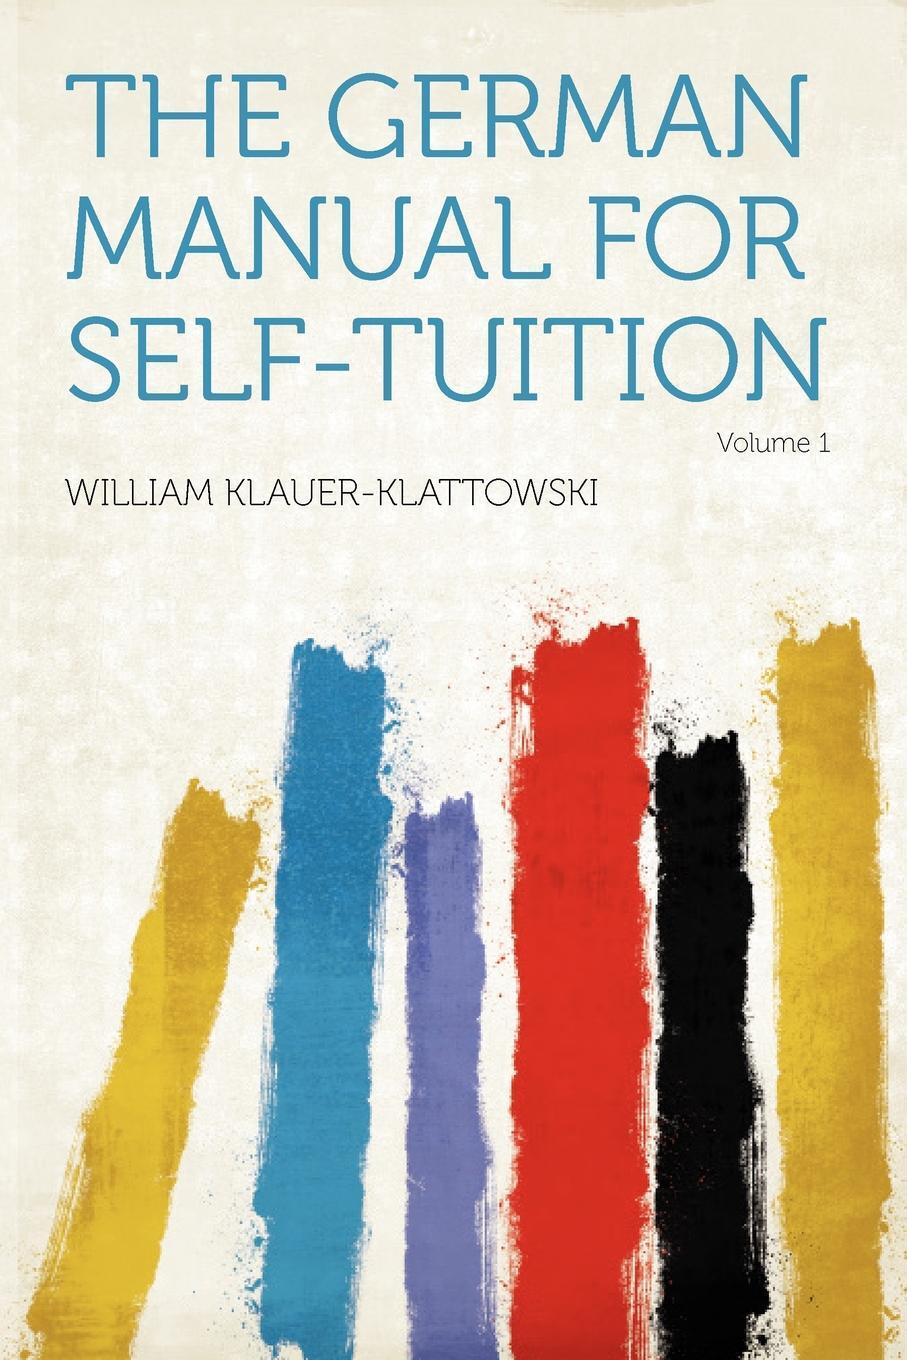 The German Manual for Self-tuition Volume 1